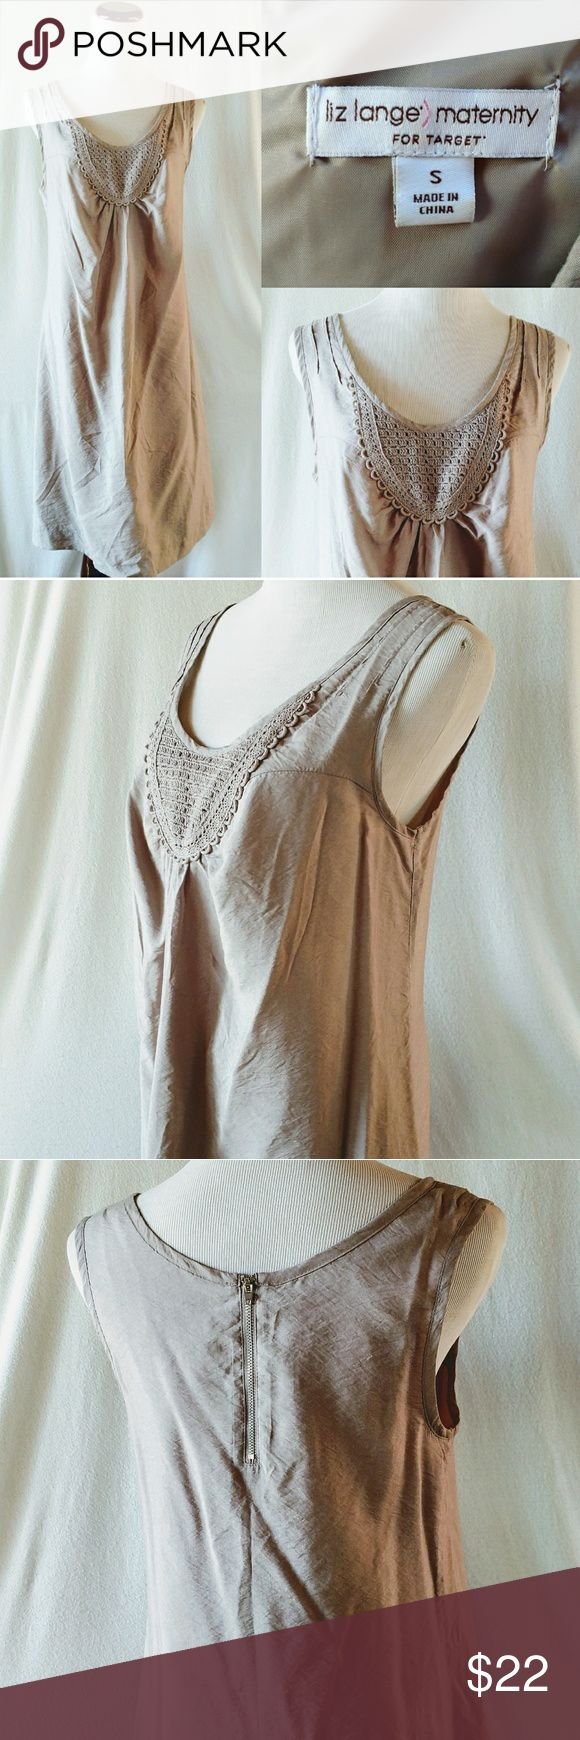 Liz Lange Maternity Beige Tan Embroidery Dress. S This cute dress is perfect for a baby shower or going out with friends!  Tags: Liz Lange maternity, pregnant, pregnancy dress, small, S, beige, taupe, tan, embroidery, crochet, cute, summer, spring, Easter, midi, baby shower dress, boho, bohemian Liz Lange Dresses Midi